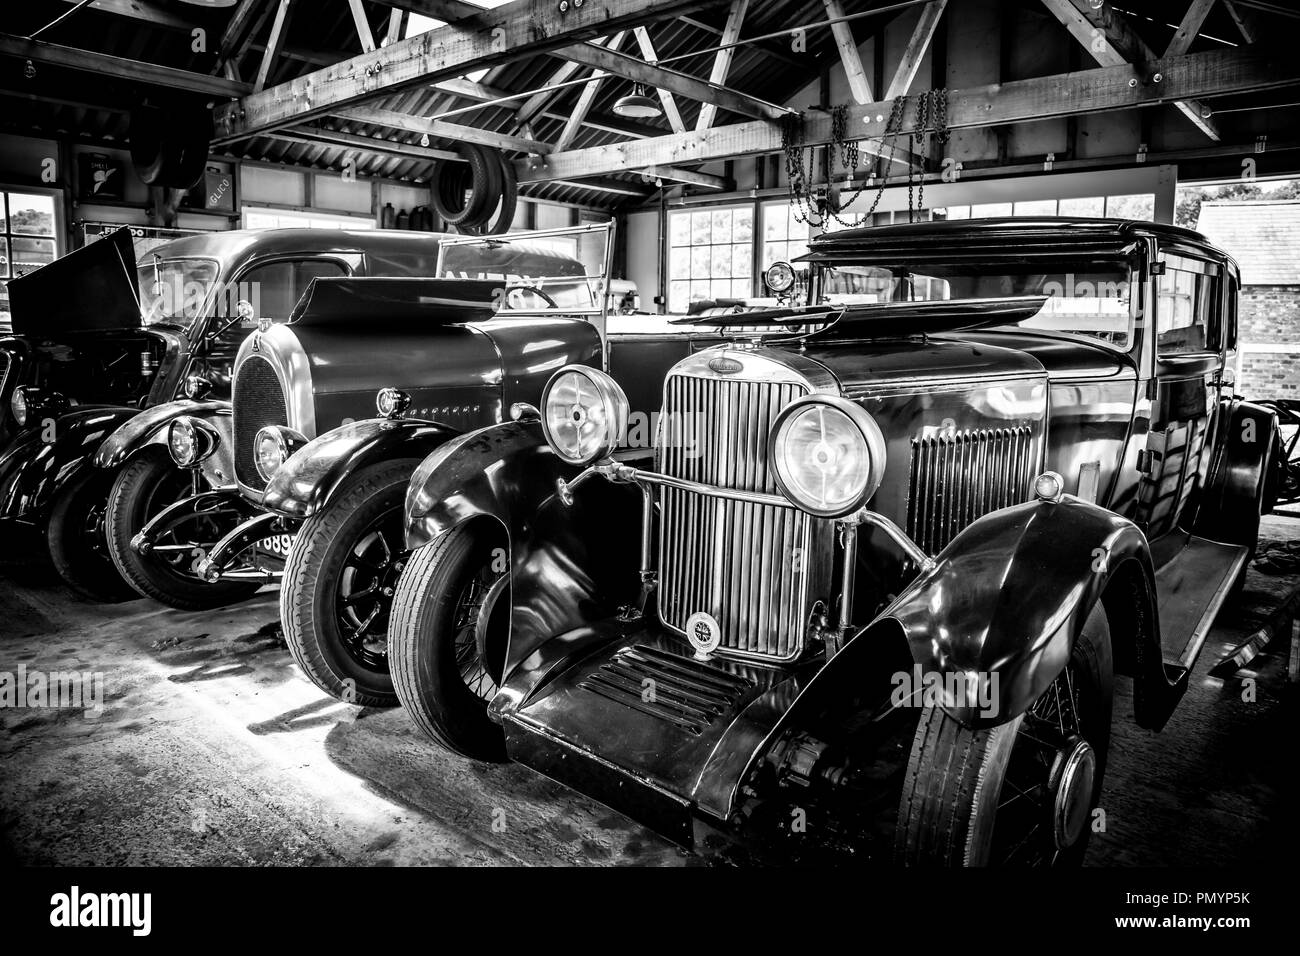 Detailed Arty Black And White Landscape Close Up Of Shiny Polished Vintage Classic Cars Parked Side By Side On Display In An Open Garage Space Stock Photo Alamy